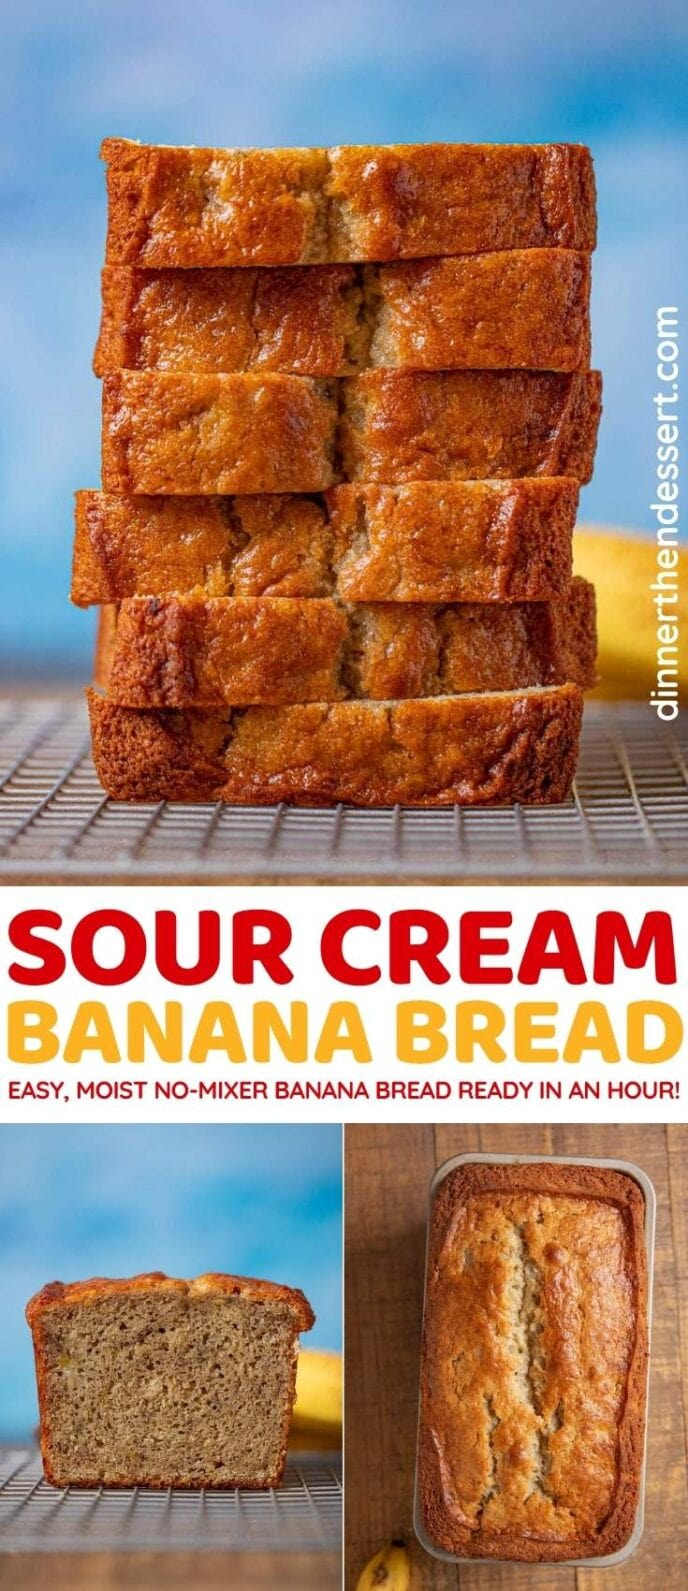 Sour Cream Banana Bread collage